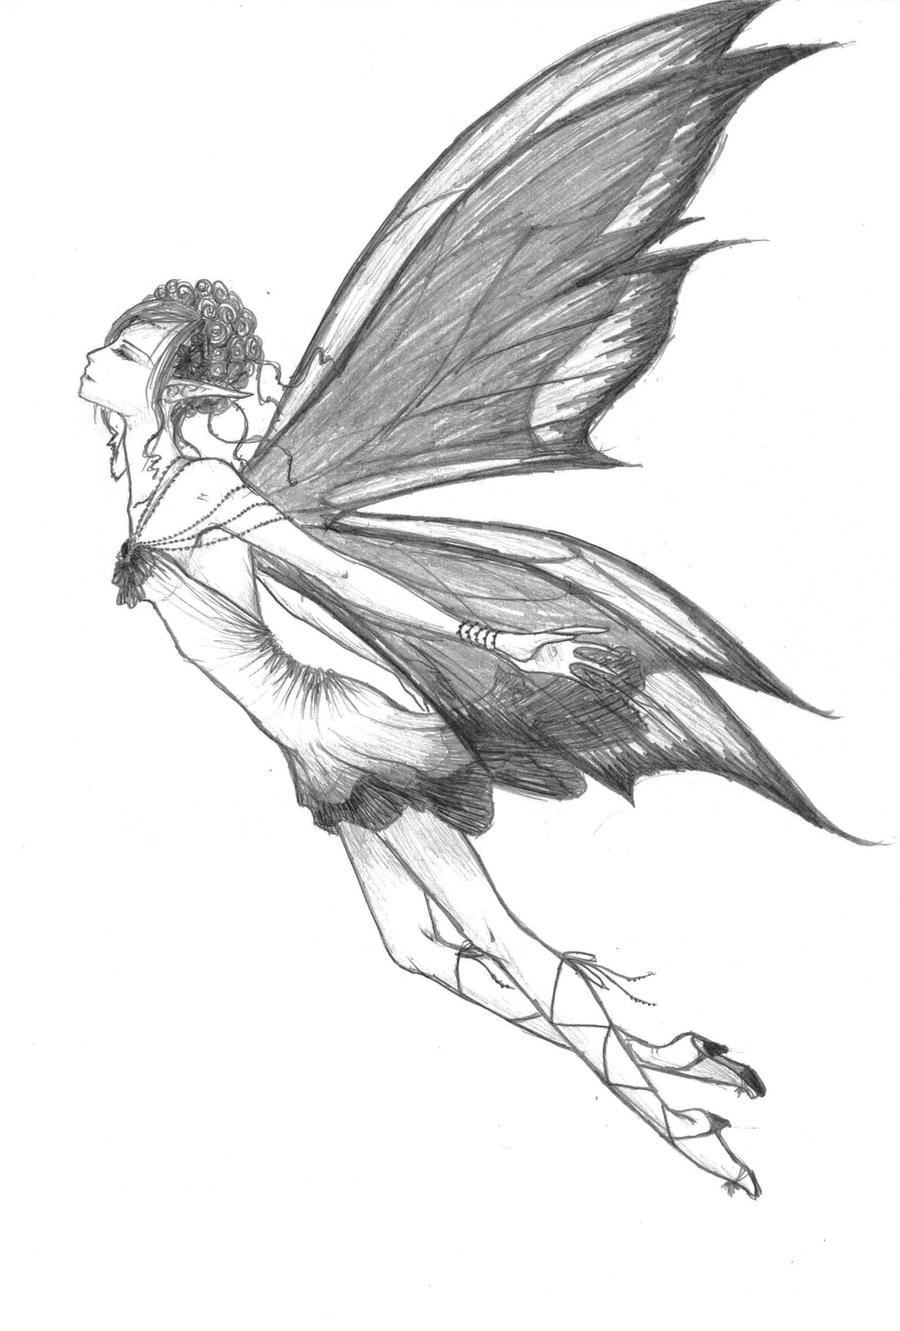 Fairy sketch by animeghostygirl on DeviantArt